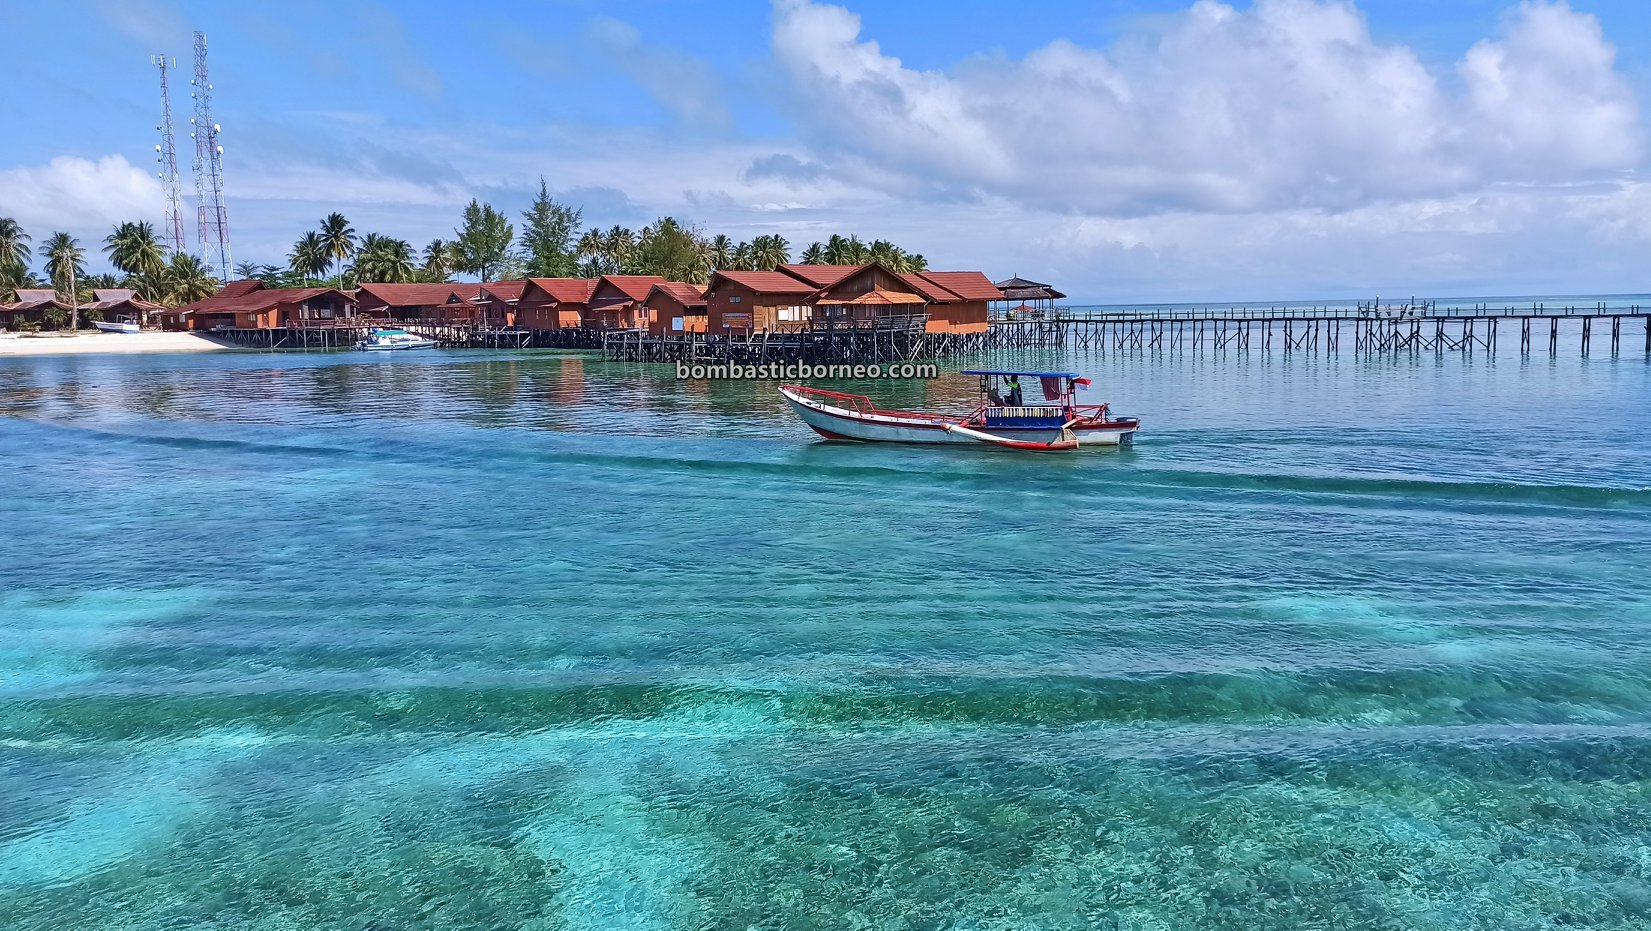 Diving spot, exploration, nature, hidden paradise, holiday, snorkelling, Berau, Wonderful Indonesia, Objek wisata, Tourist attraction, travel guide, Trans Borneo, 穿越婆罗洲游踪, 东加里曼丹达拉湾岛, 潜水天堂旅游景点,